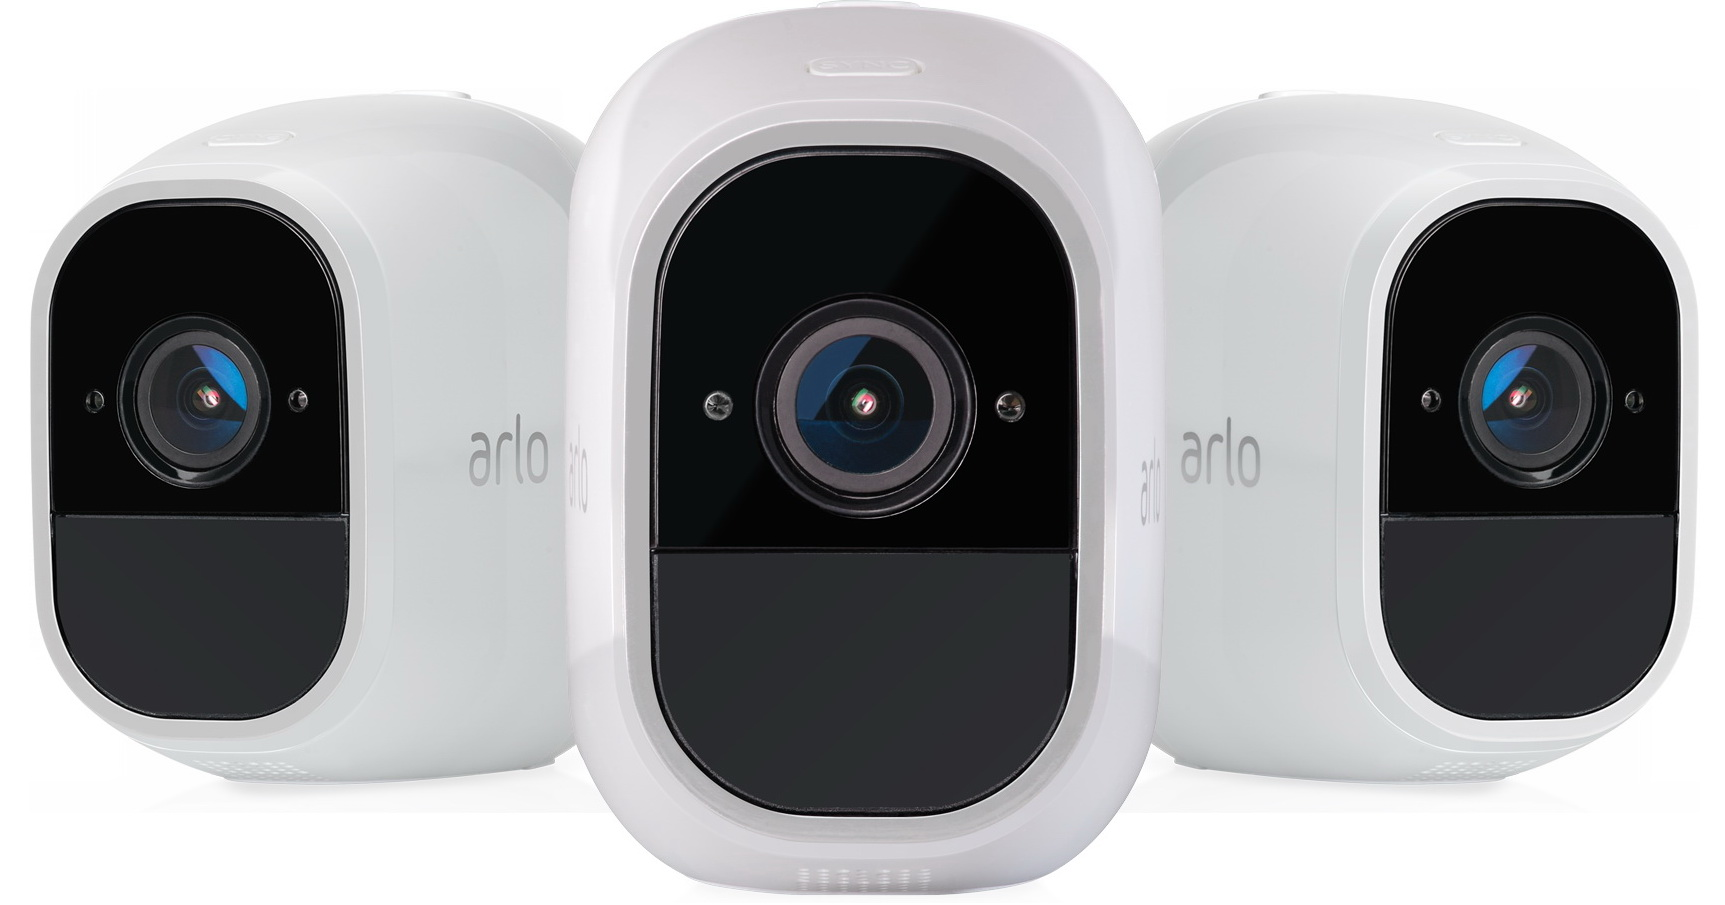 netgear arlo pro 2 smart home kamera h rt auf amazon alexa news. Black Bedroom Furniture Sets. Home Design Ideas